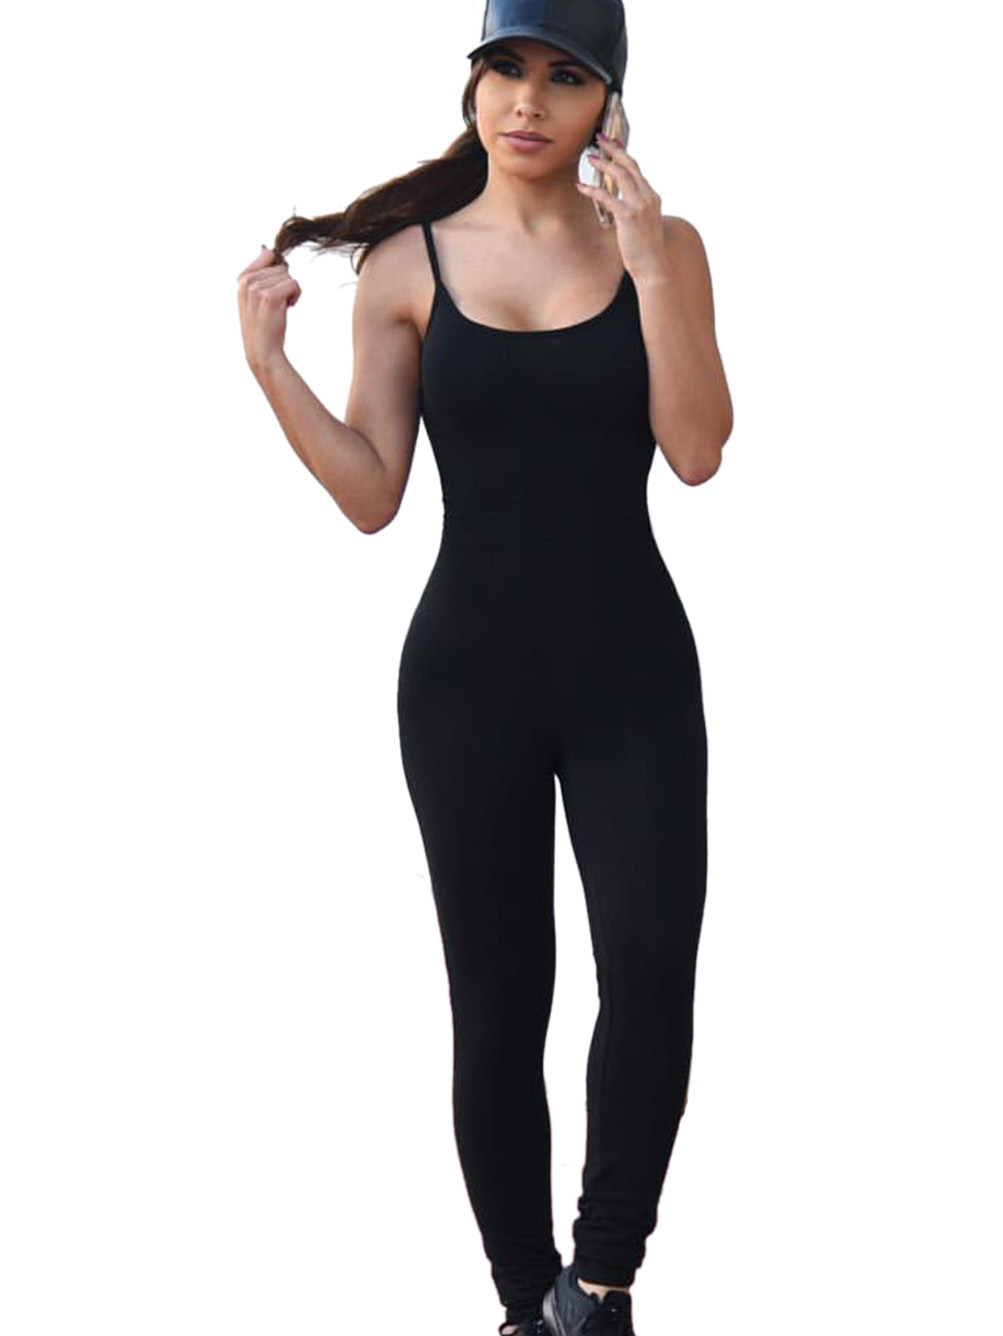 Slim Solid Jumpsuits Black Strapless O-Neck Skinny Long Jumpsuit Casual Bodycon 2016 New Arrival Autumn Sexy Rompers